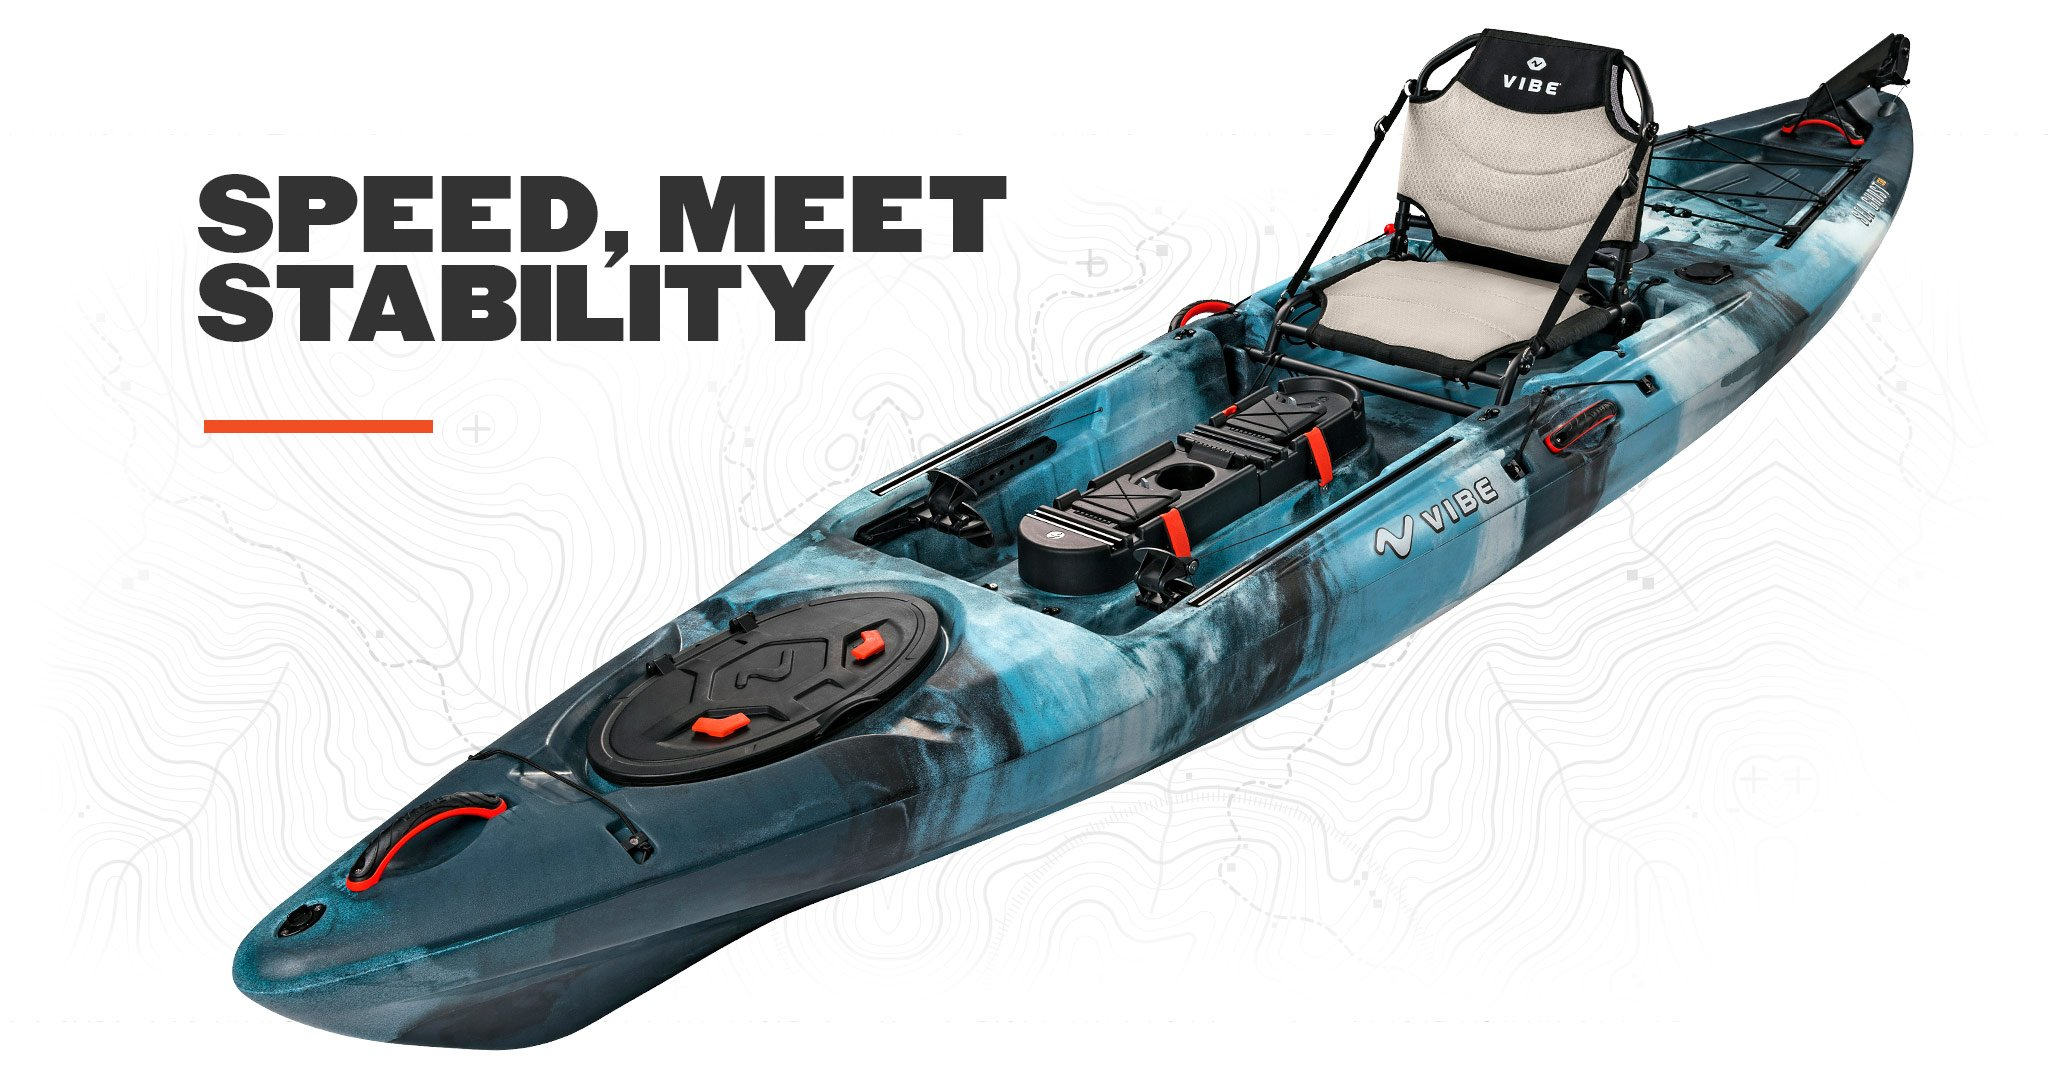 2019 Vibe Sea Ghost 130 - Speed Meets Stability